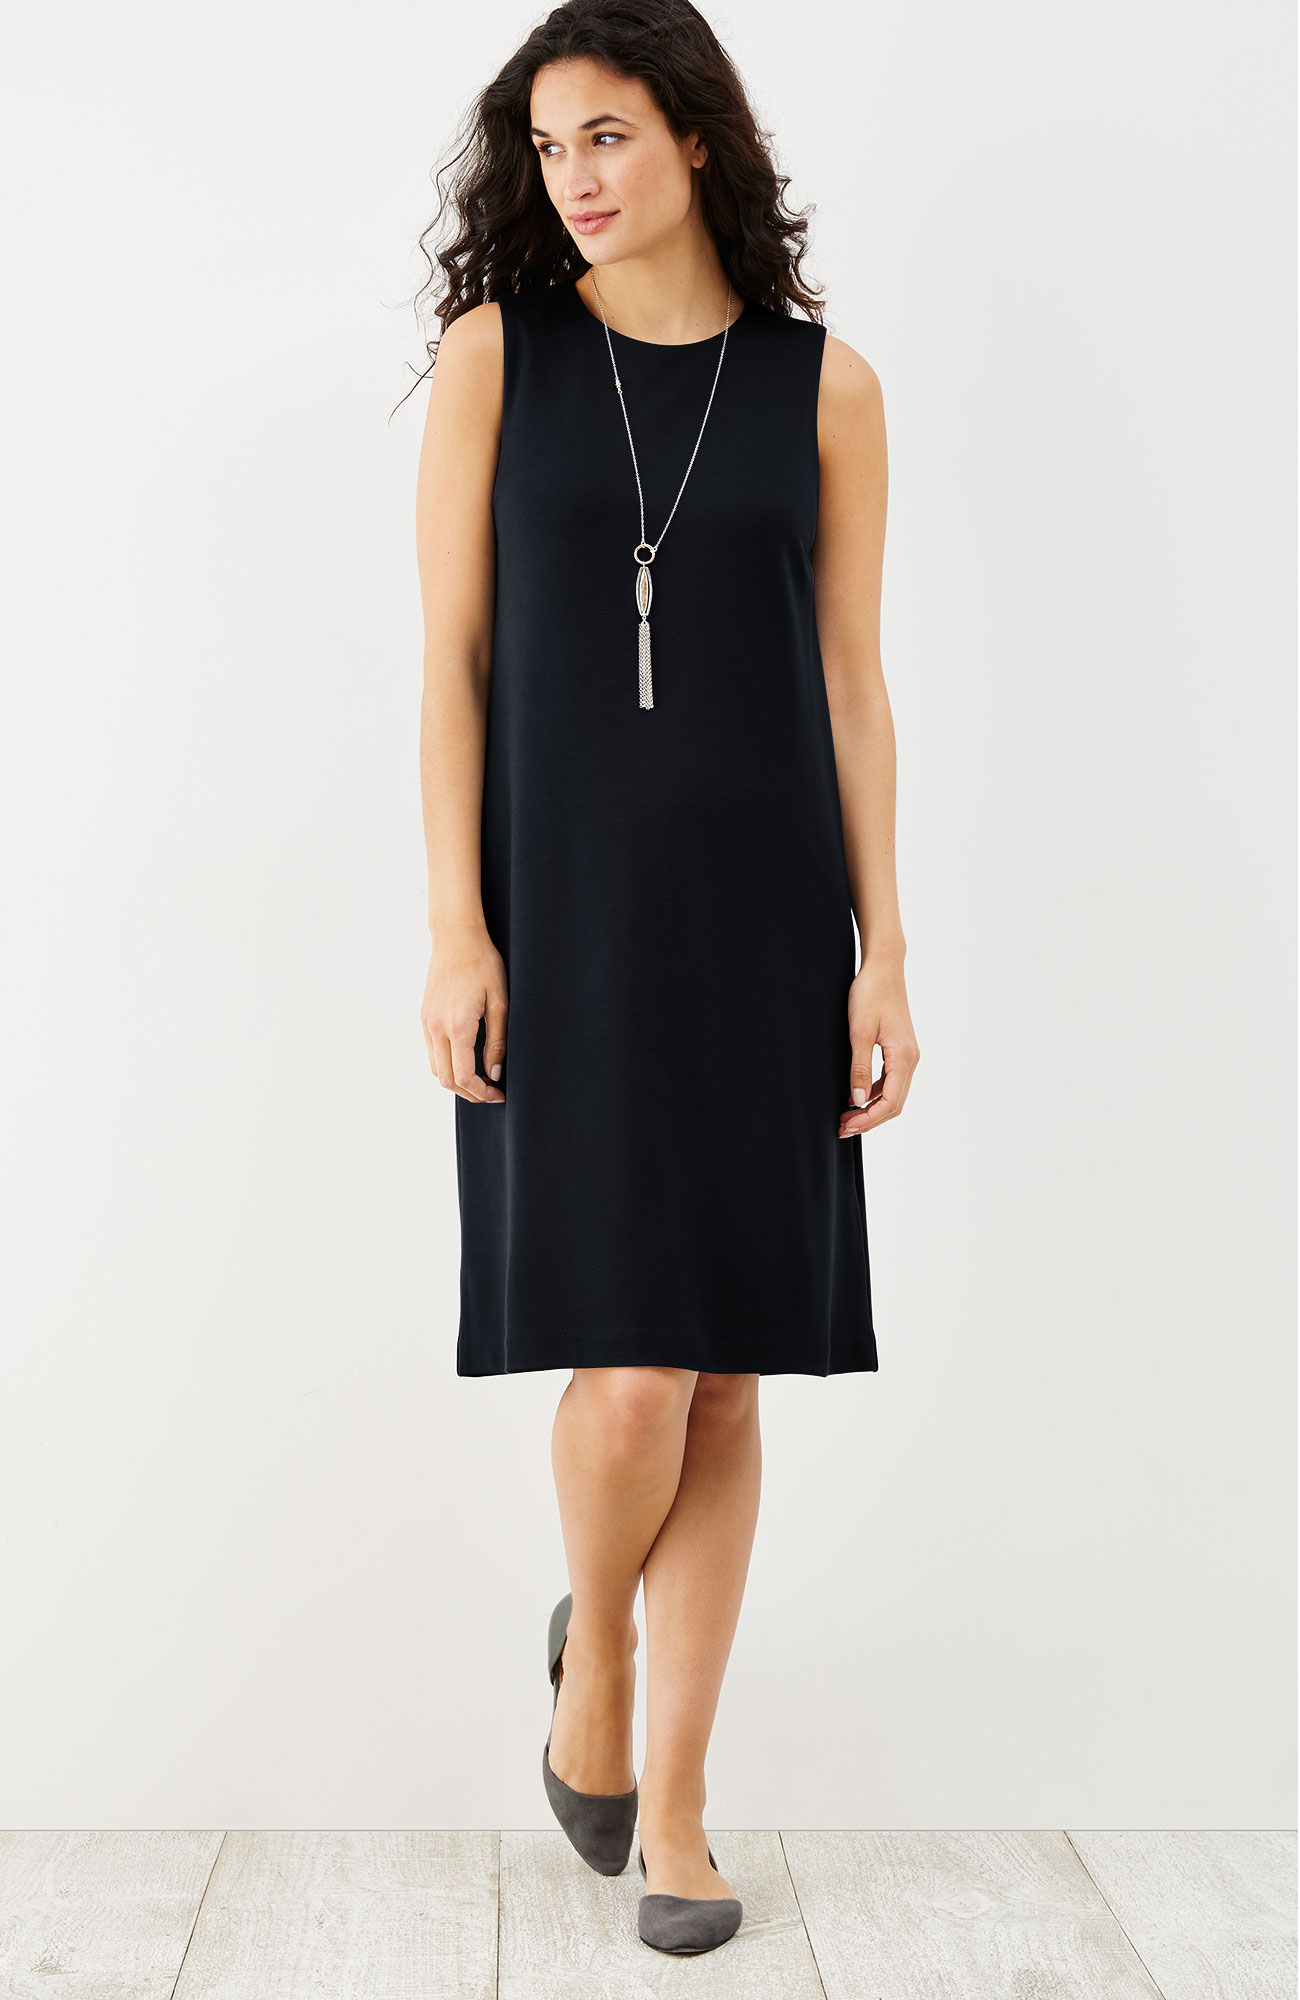 ponte knit sleeveless dress